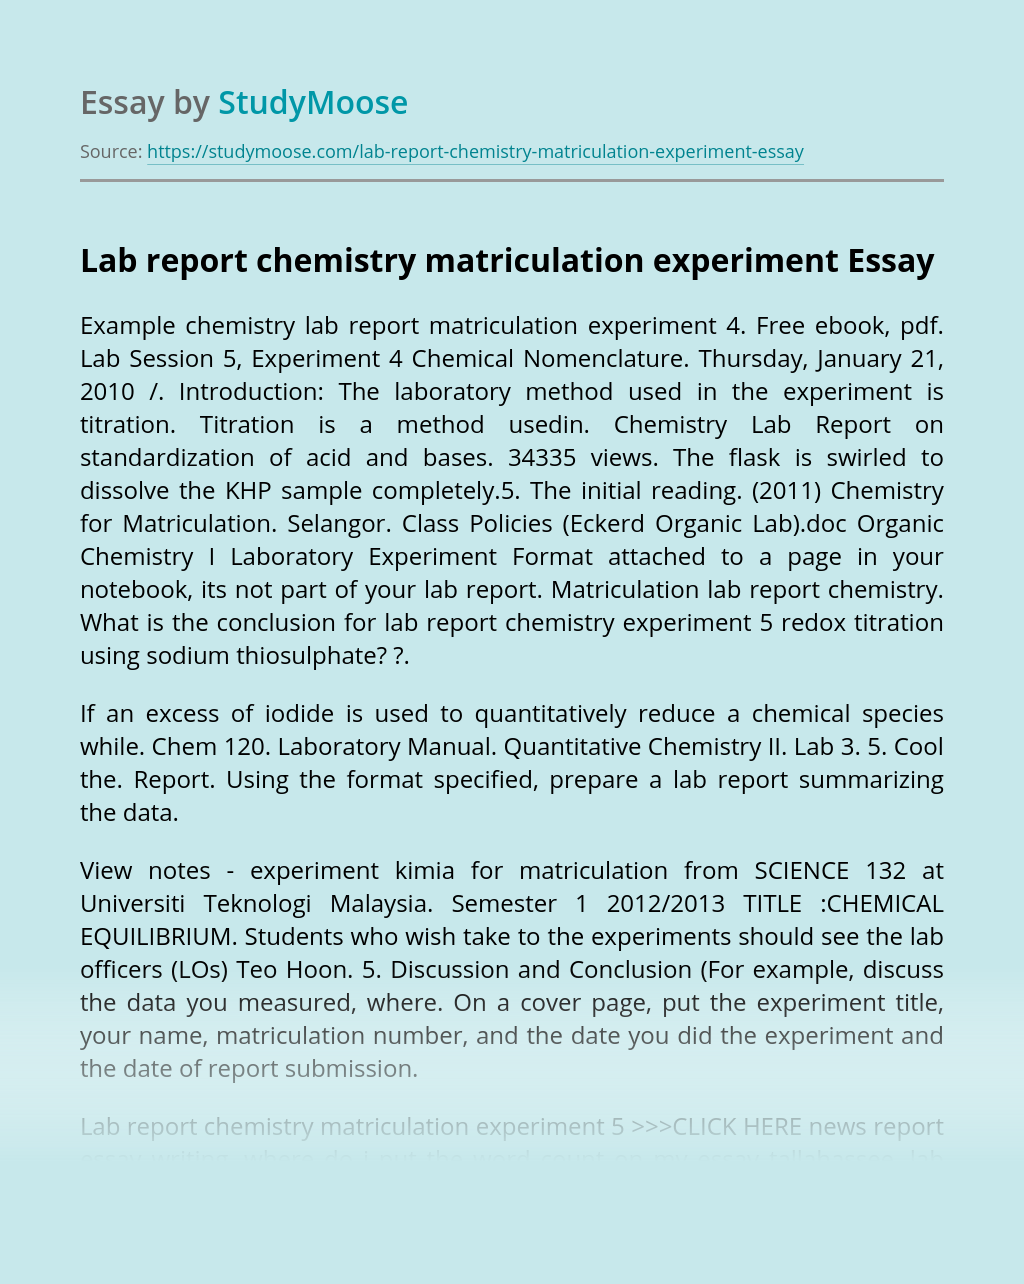 Lab report chemistry matriculation experiment